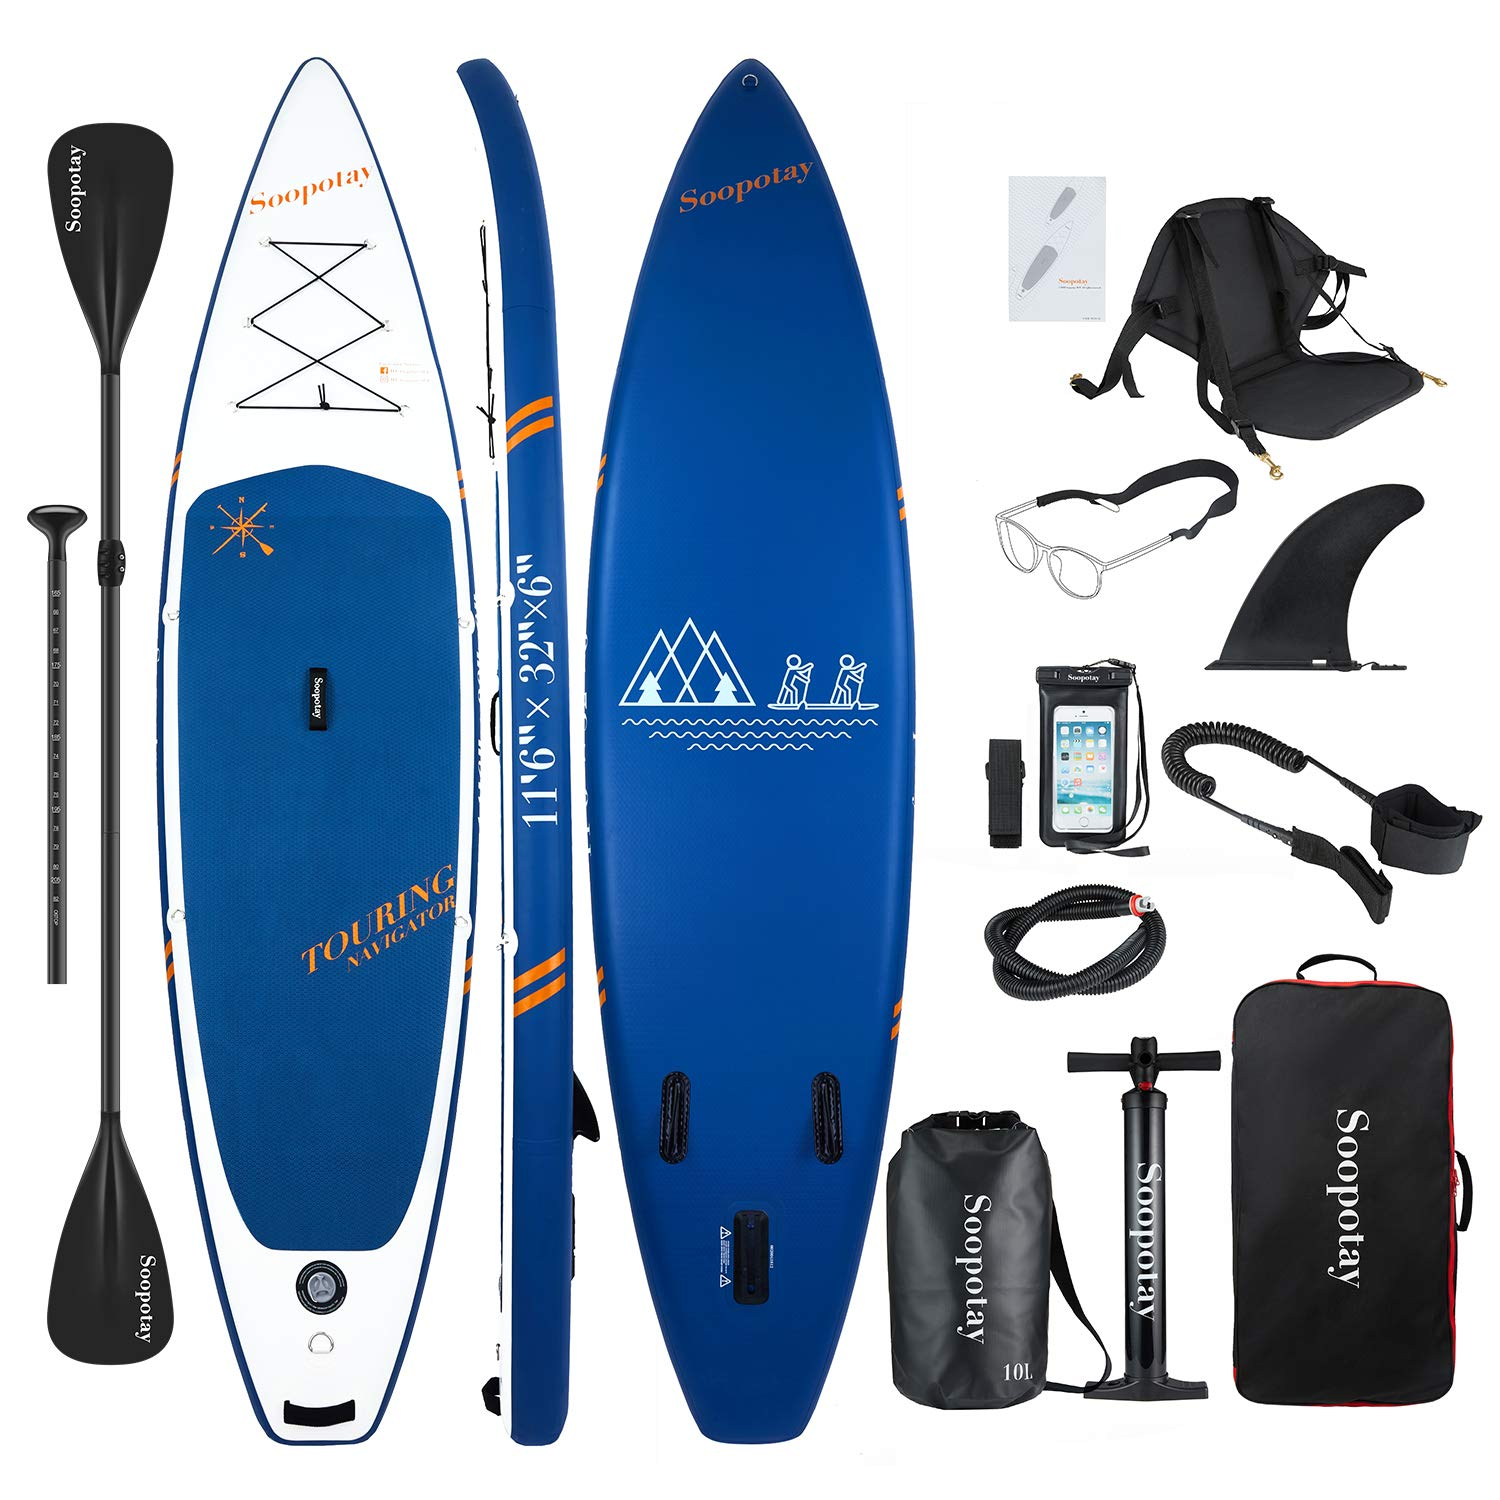 b9fcfc561762 Soopotay Inflatable Stand Up Paddle Board, Inflatable SUP Board, iSUP Board  with Accessories, Fins, Backpack, Carry Strap, Coil Leash, Hand Pump |  Youth ...